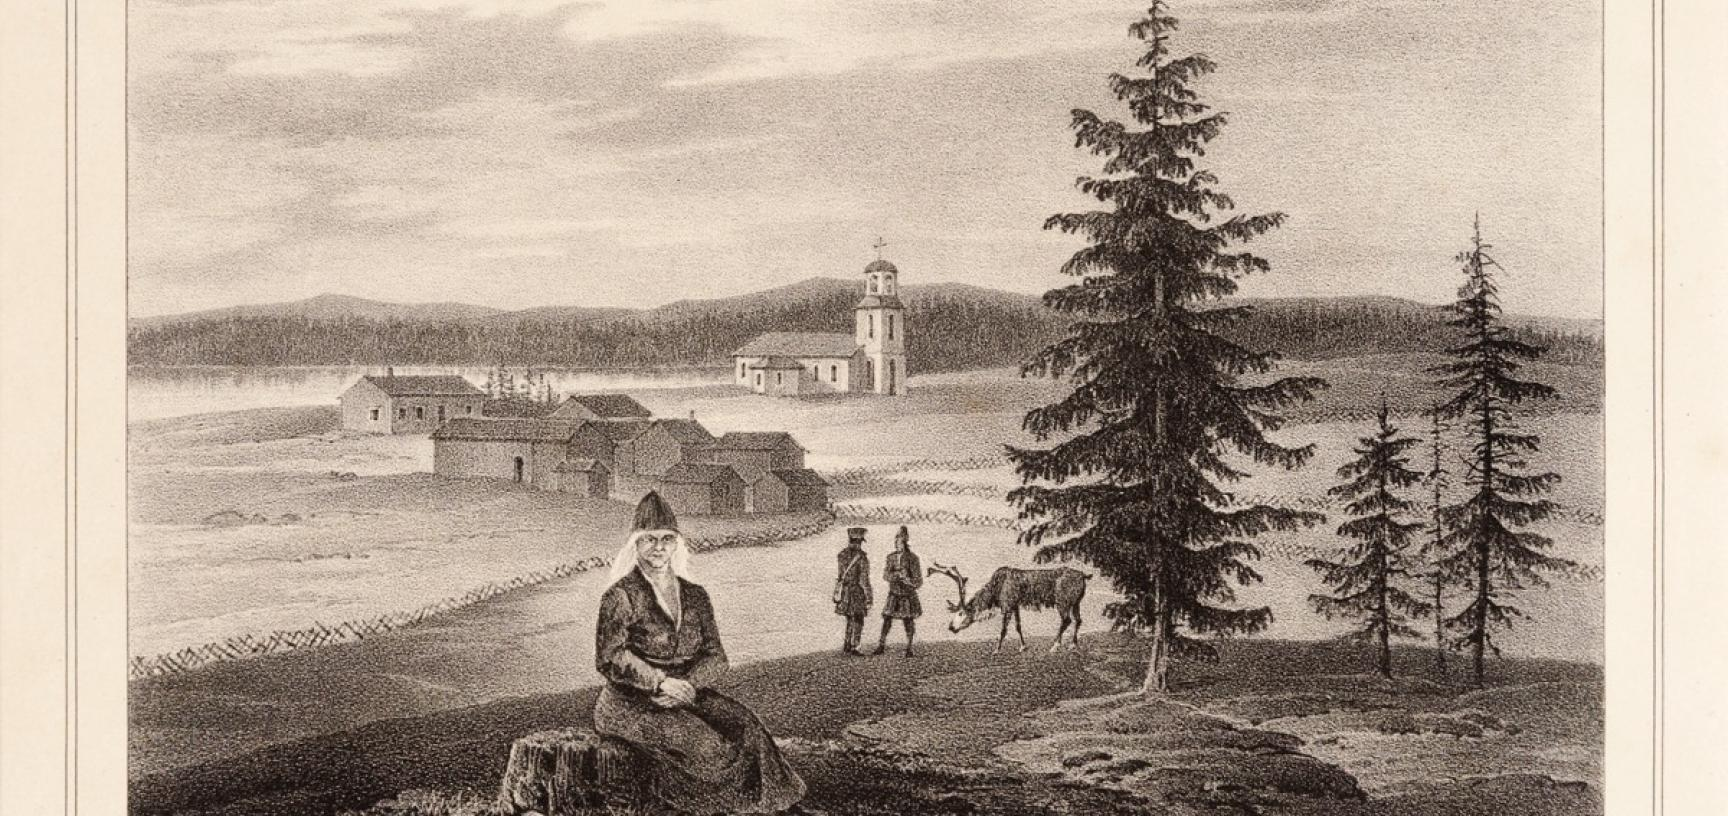 Lithograph produced in Berlin by Hermann Delius, published in 1841, showing a view of the ancient Saami settlement of Lycksele, Sweden, with its wooden church visible at the centre of the image. (Copyright Pitt Rivers Museum, University of Oxford. Accessi